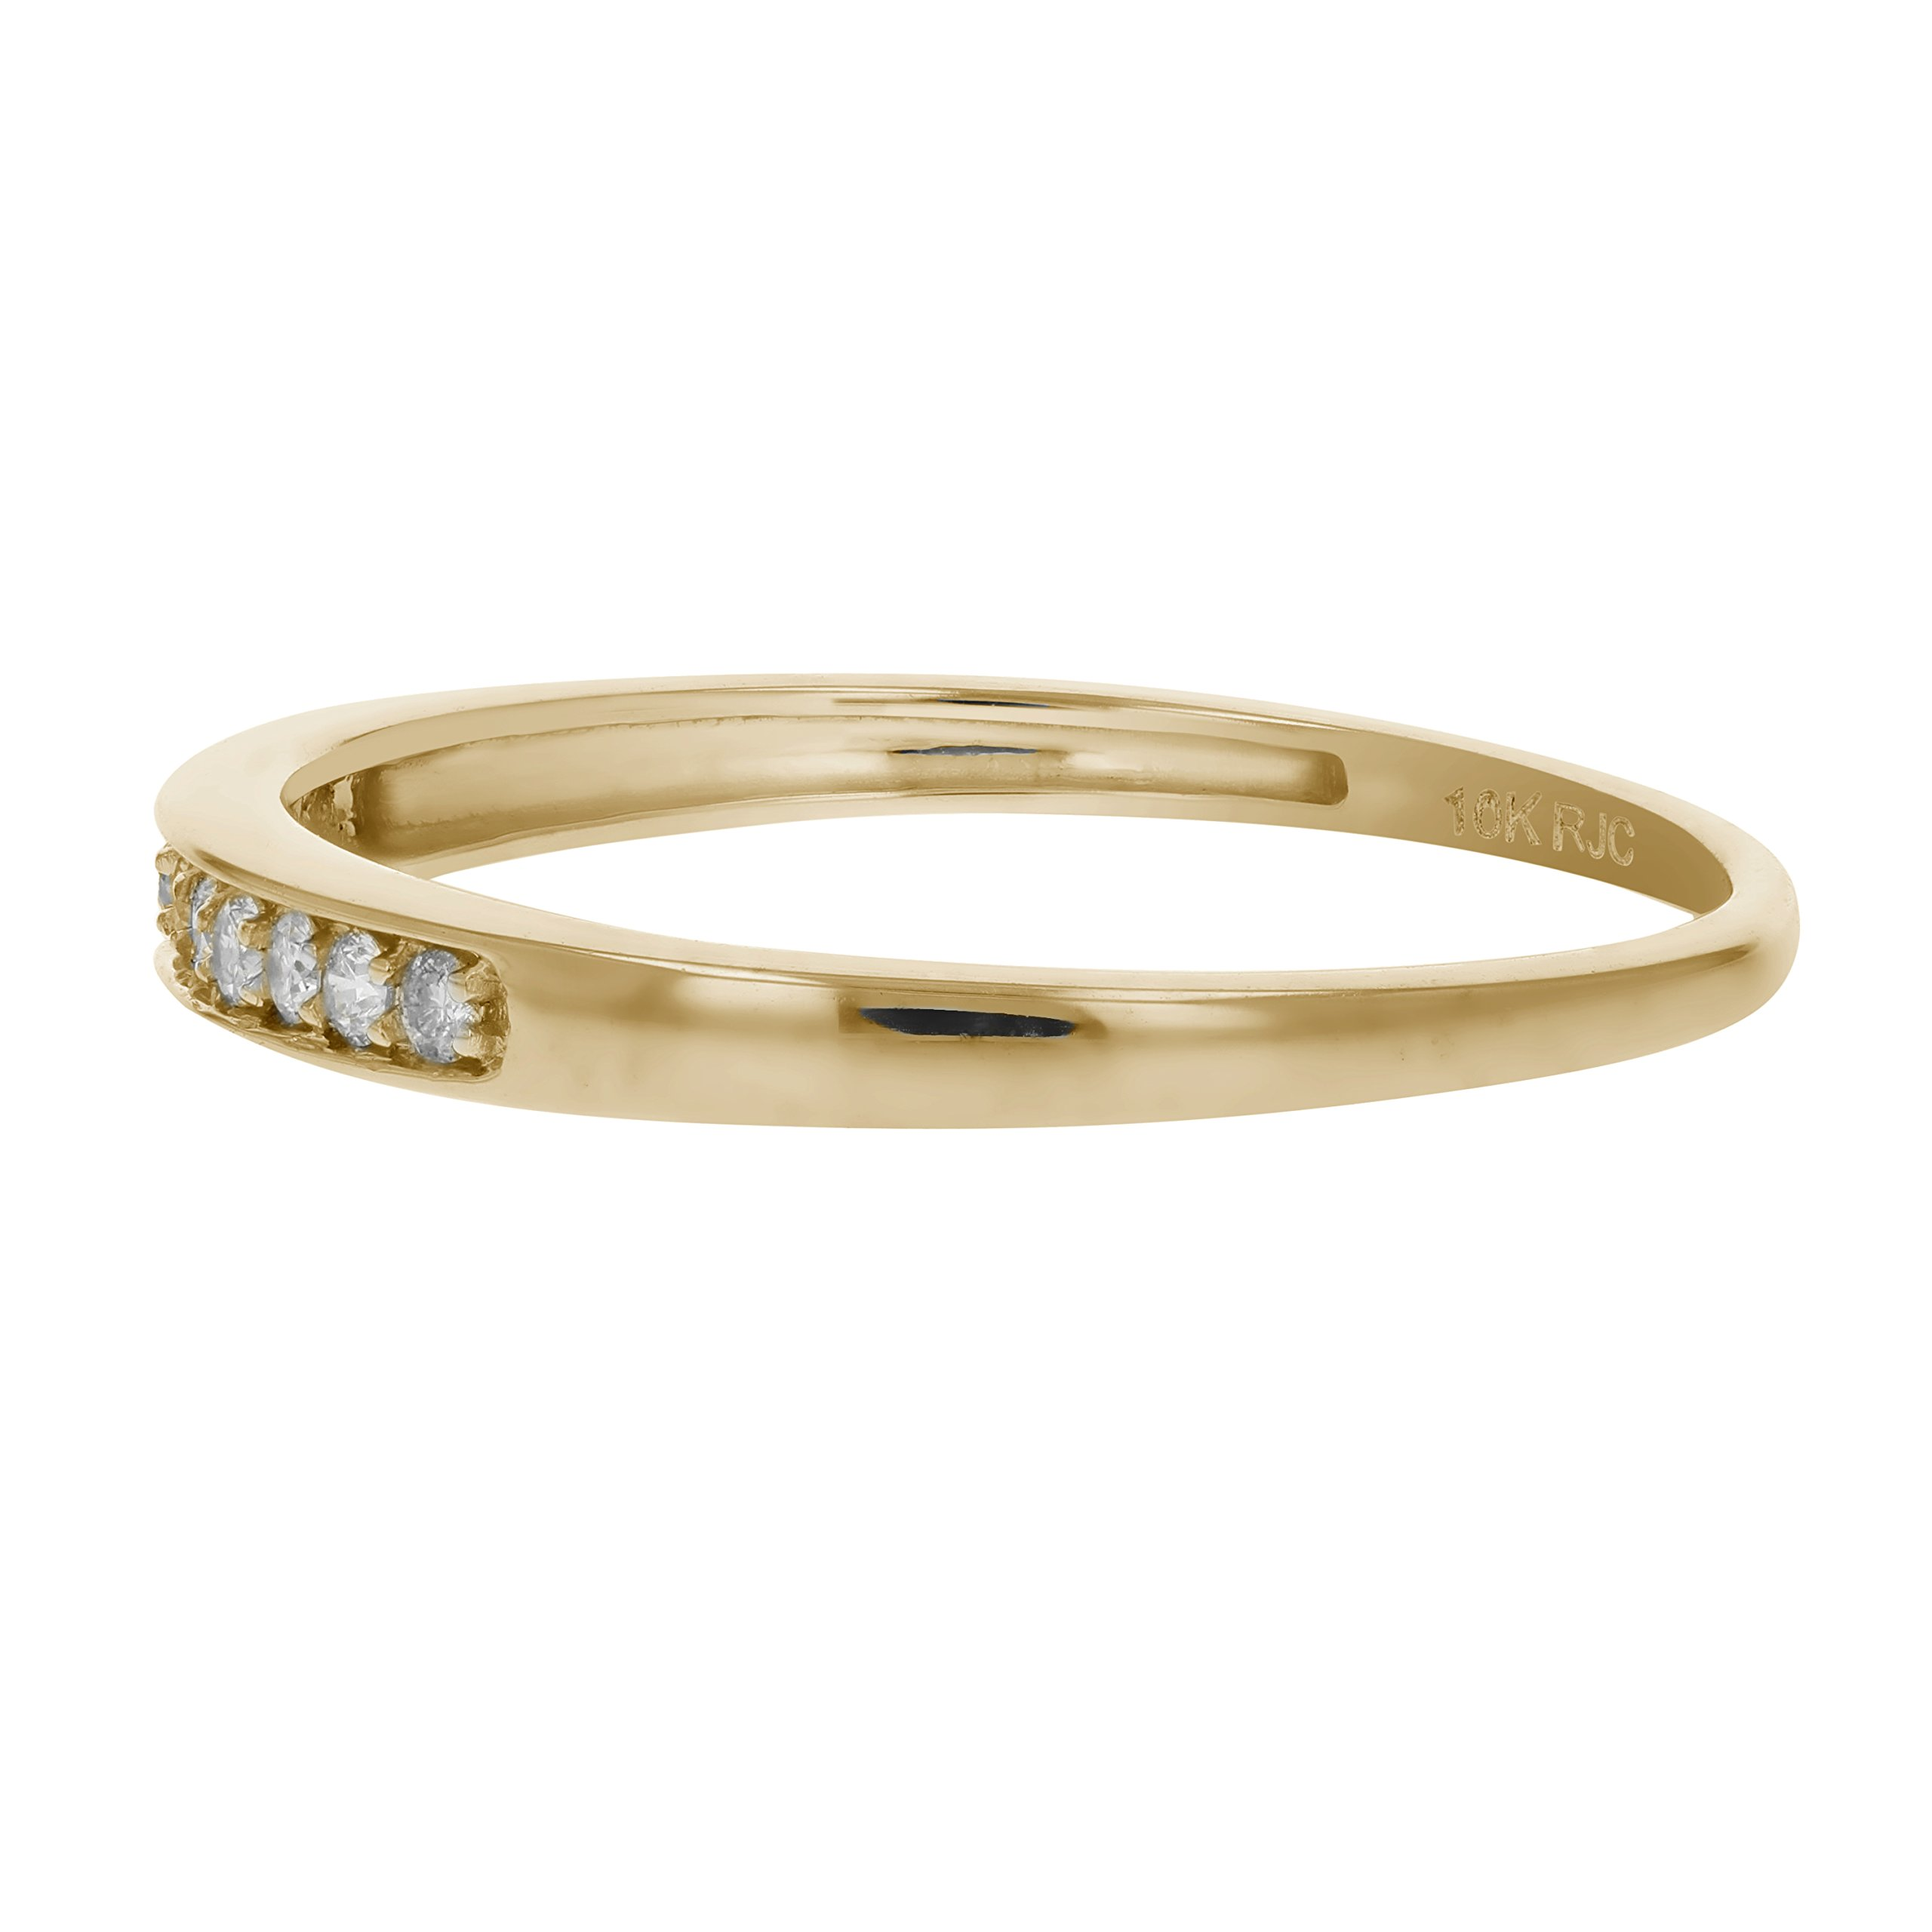 1/10 ctw Petite Diamond Wedding Band in 10K Yellow Gold In Size 9.5 by Vir Jewels (Image #2)